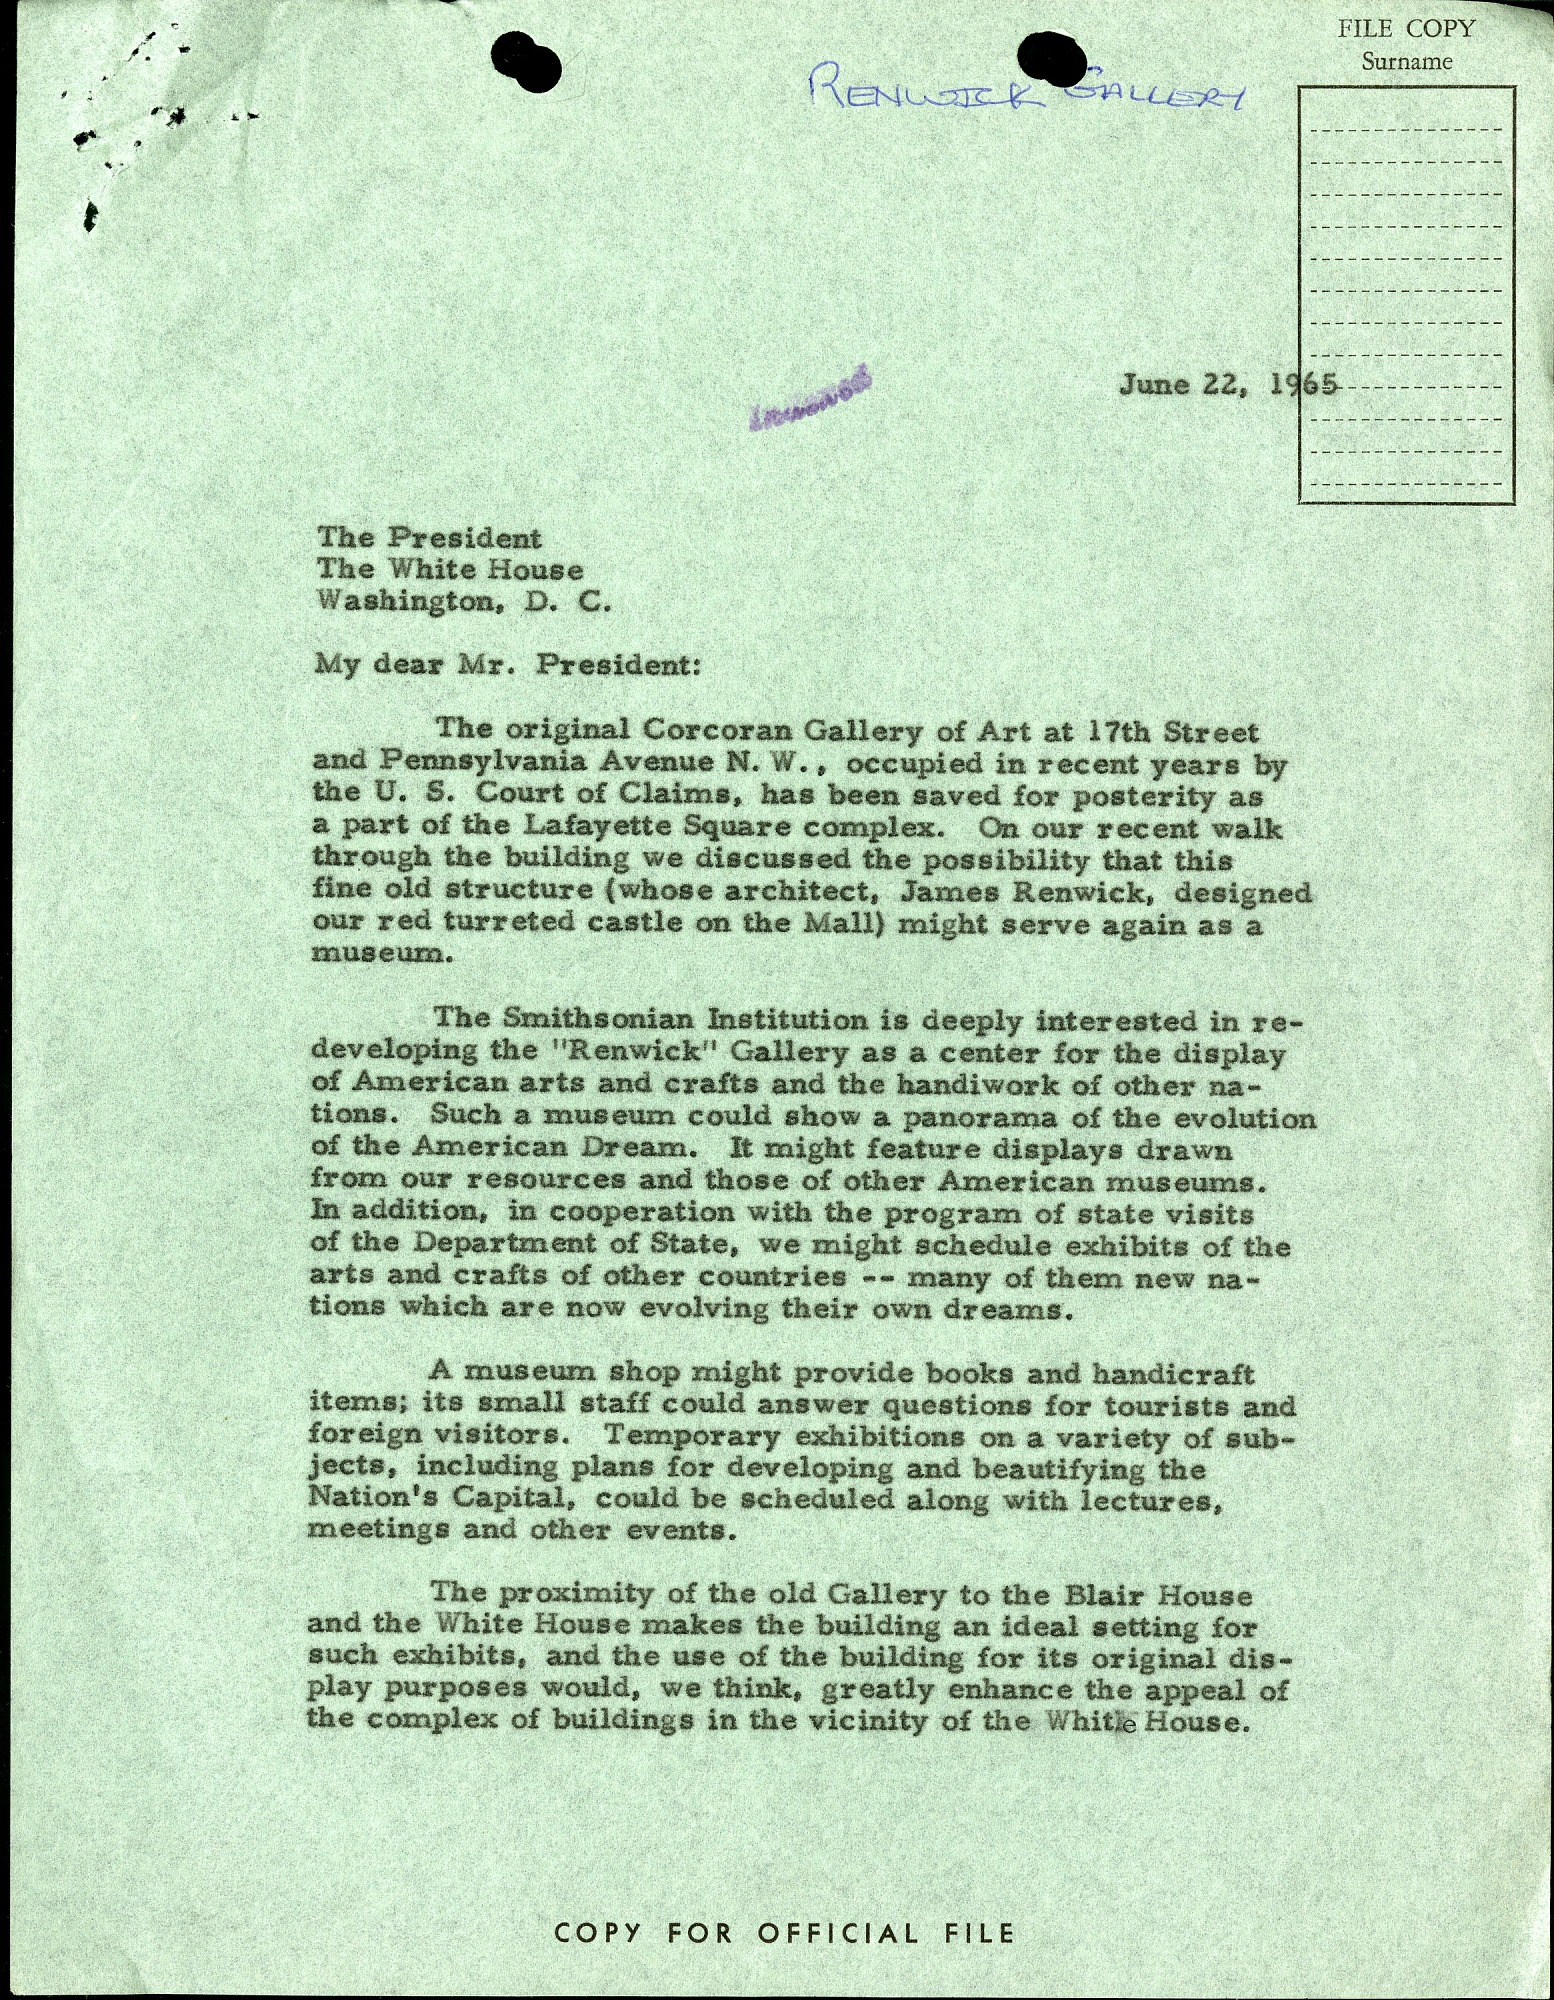 Letter S. D. Ripley to Lyndon Johnson, June 22, 1965